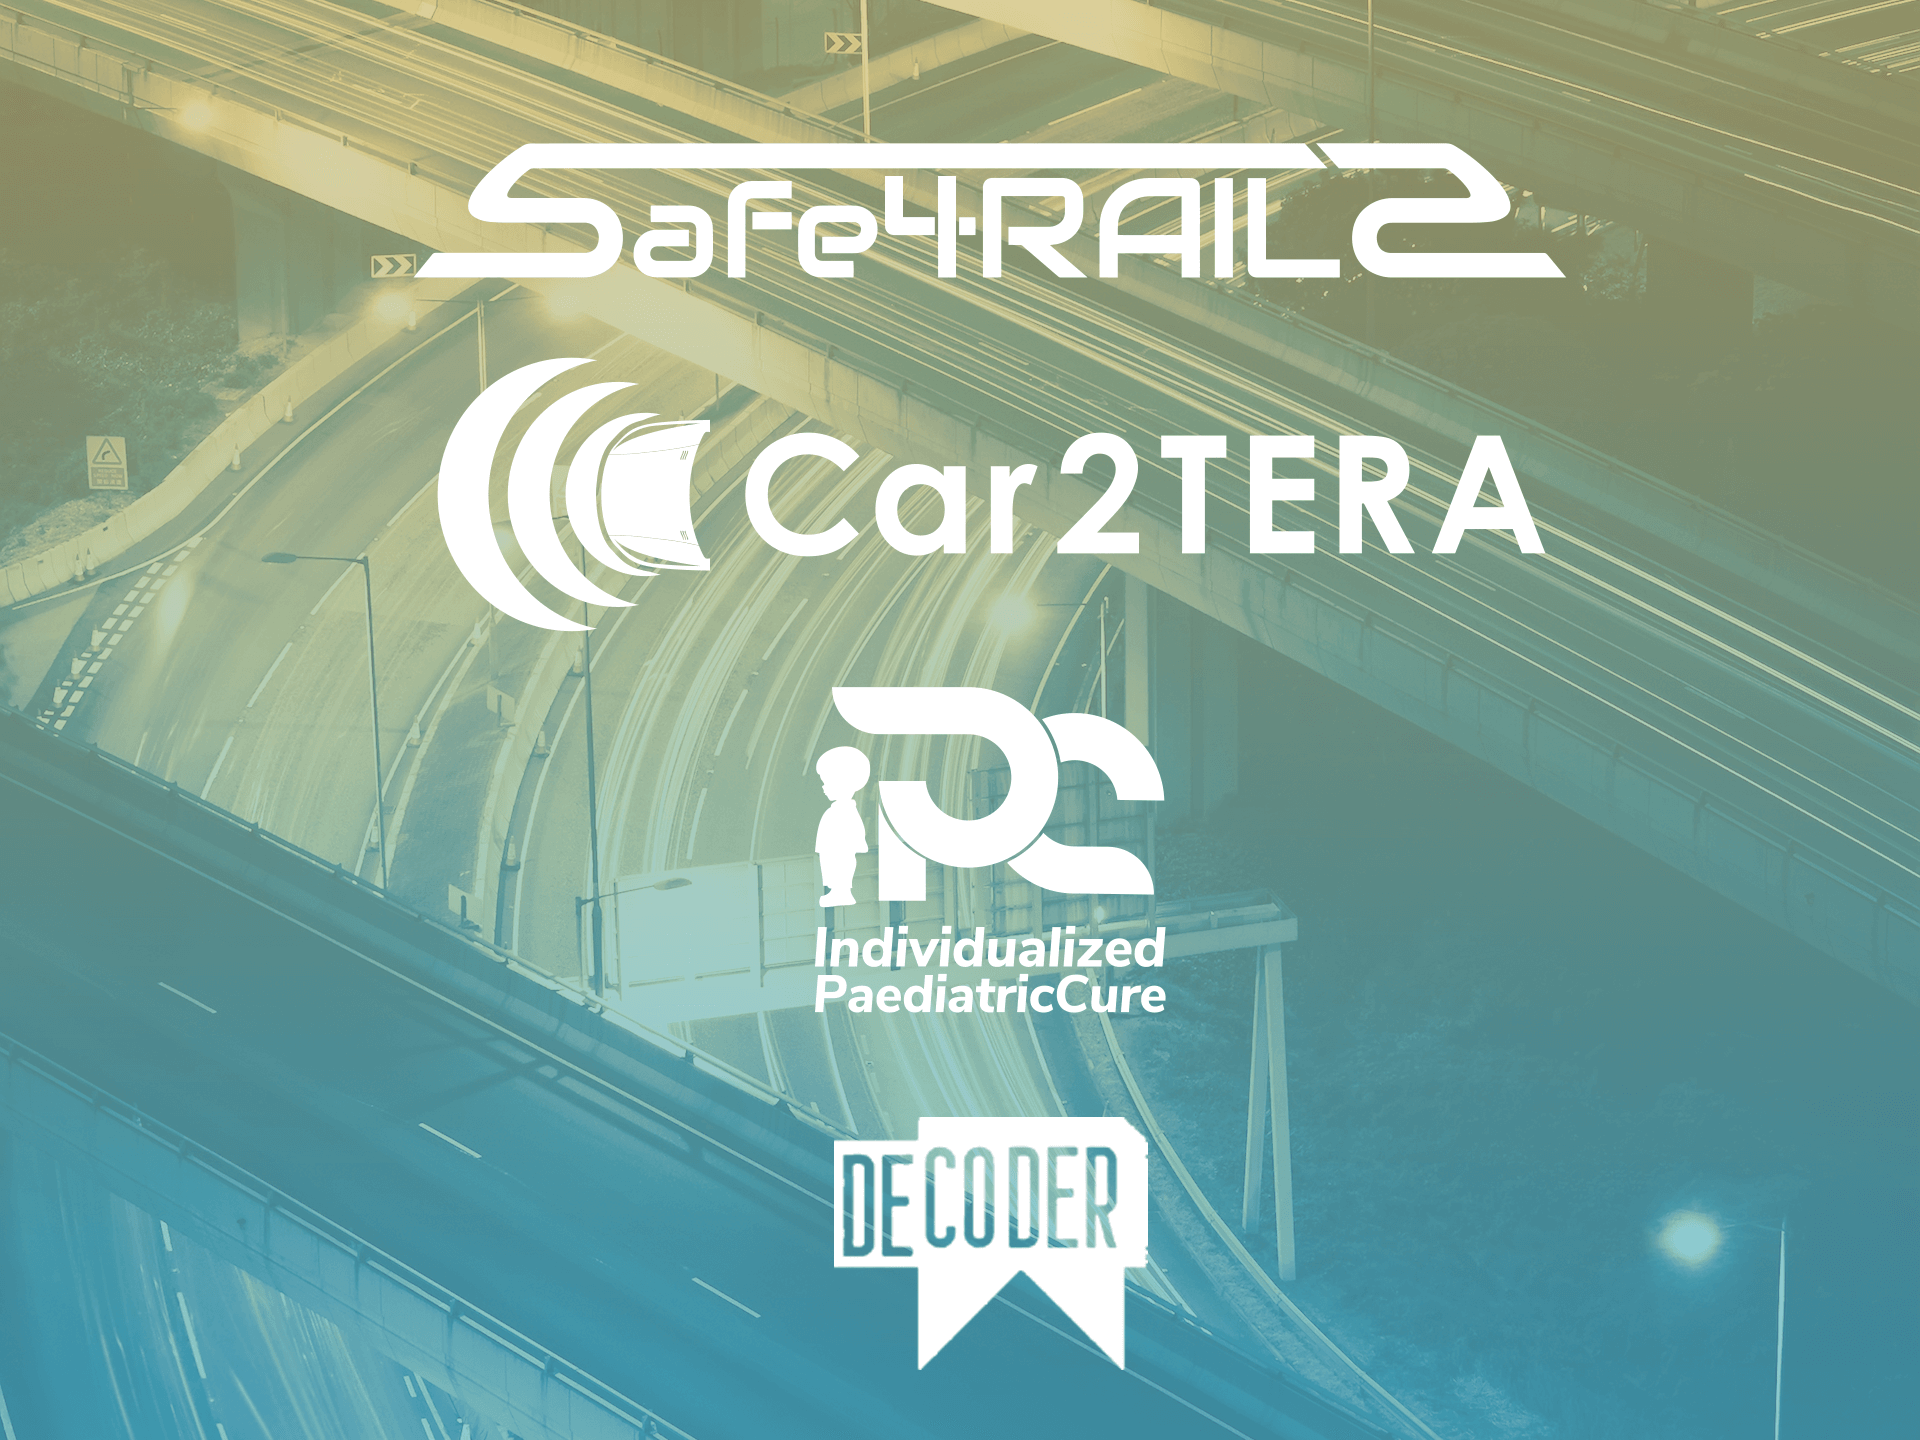 Project Logos Safe4RAIL Car2TERA iPC DECODER